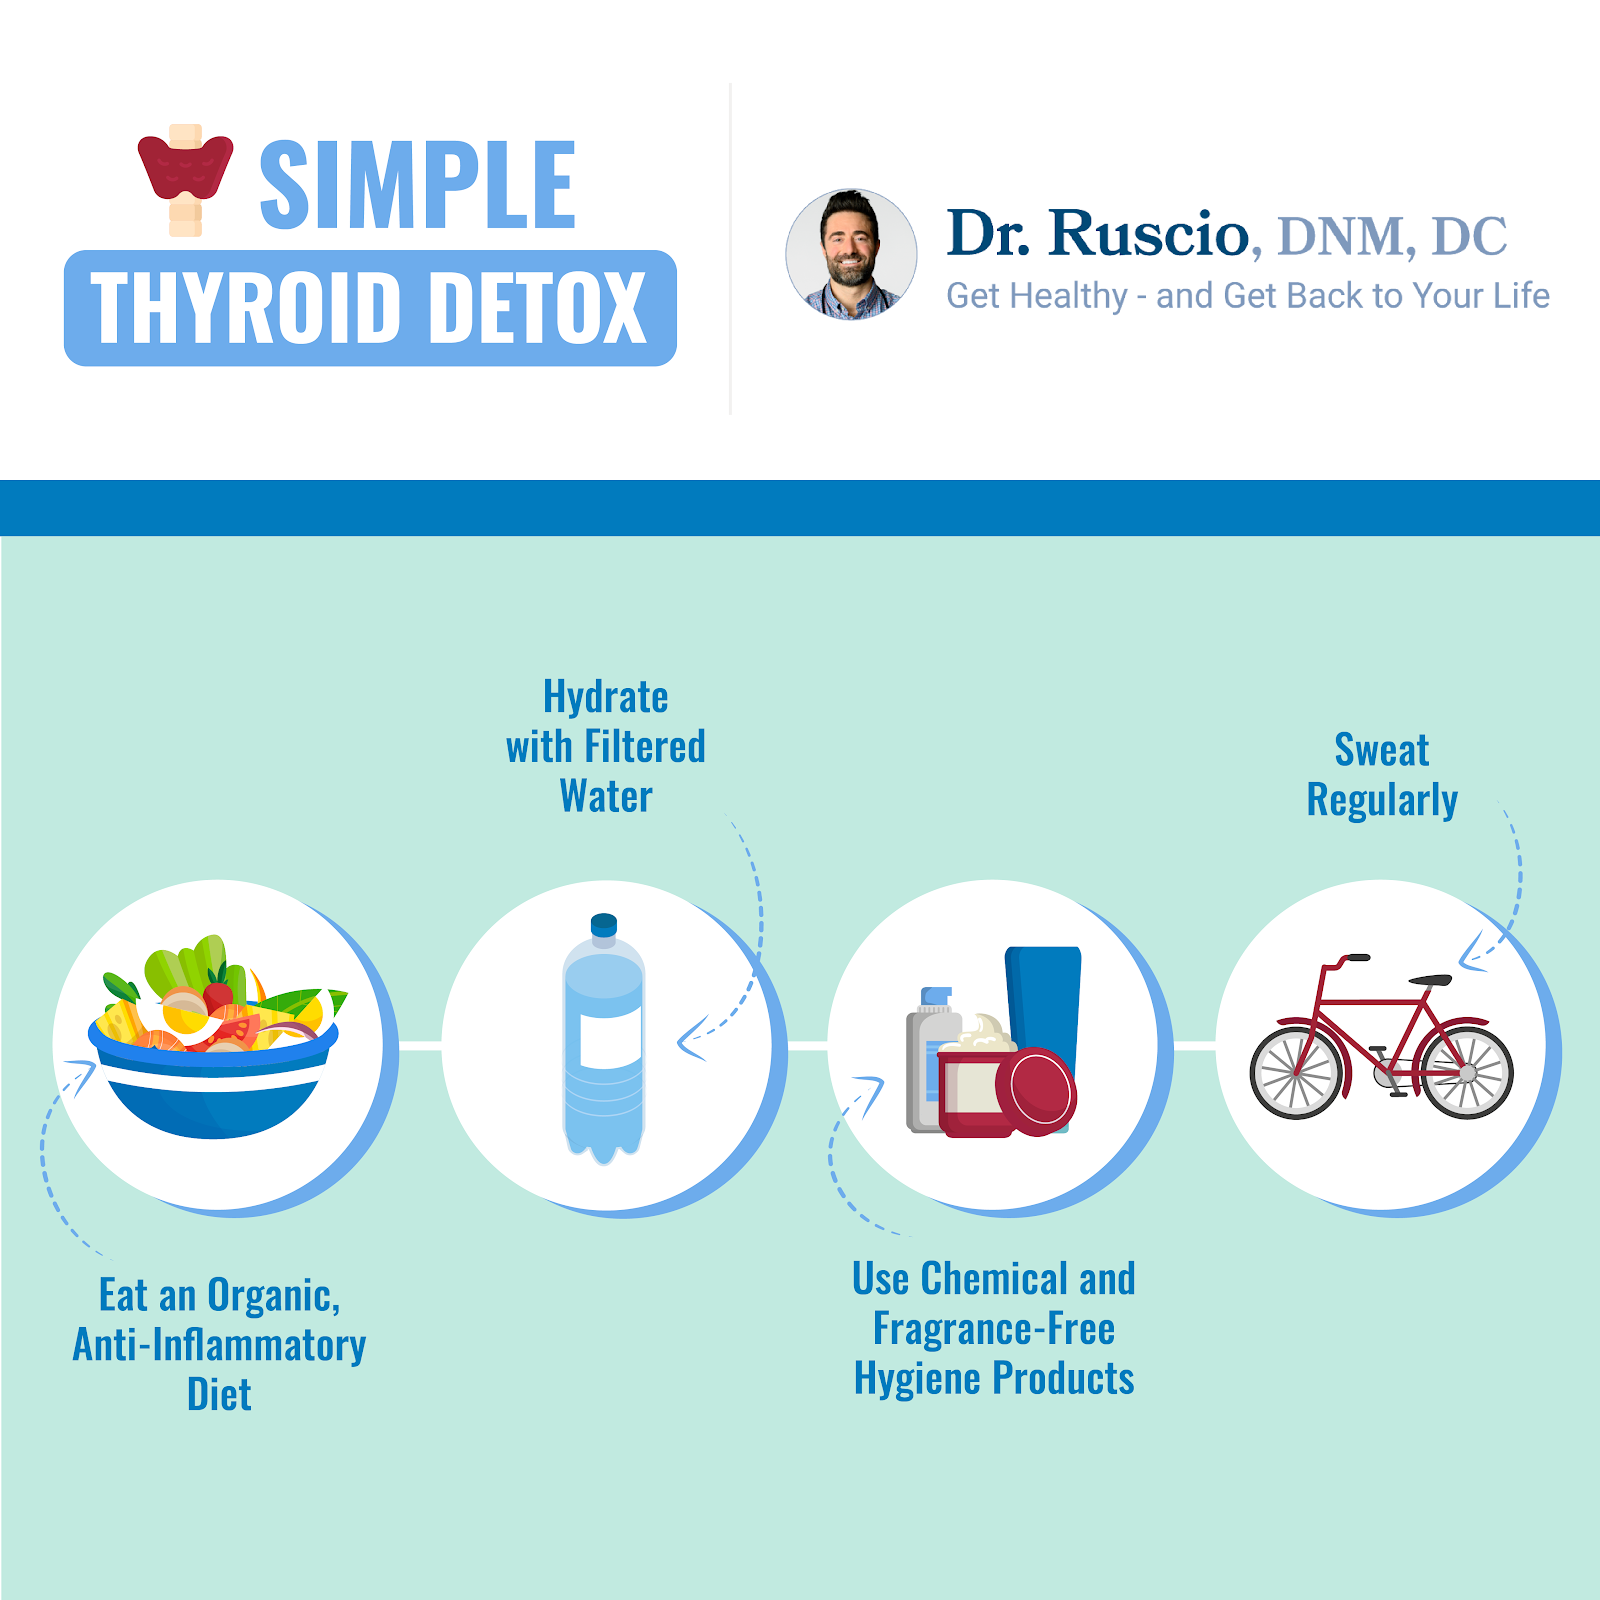 A infographic demonstrating four steps for a thyroid detox